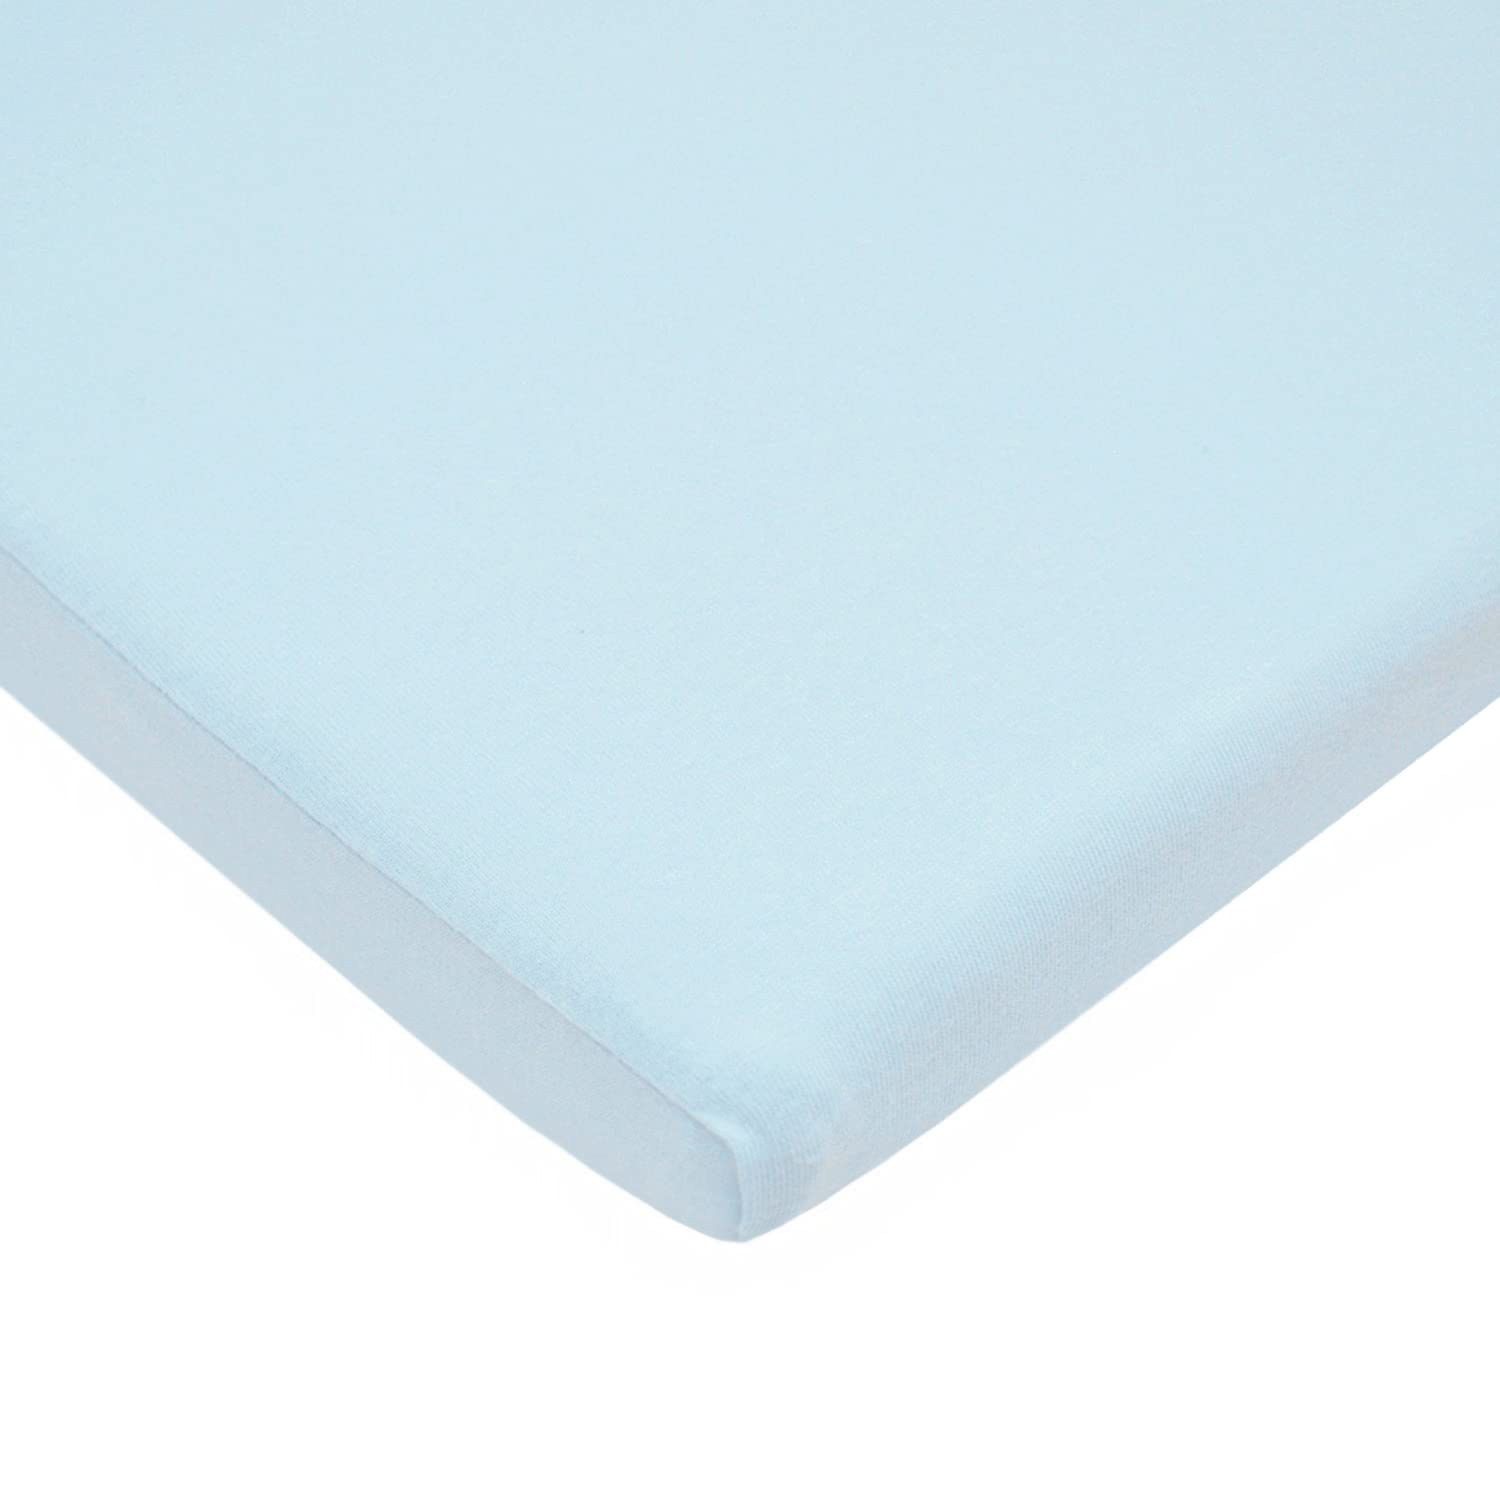 B000BPOIRU American Baby Company 100% Natural Cotton Supreme Jersey Knit Fitted Cradle Sheet, Blue, Soft Breathable, for Boys and Girls 71mV92B0pv5L